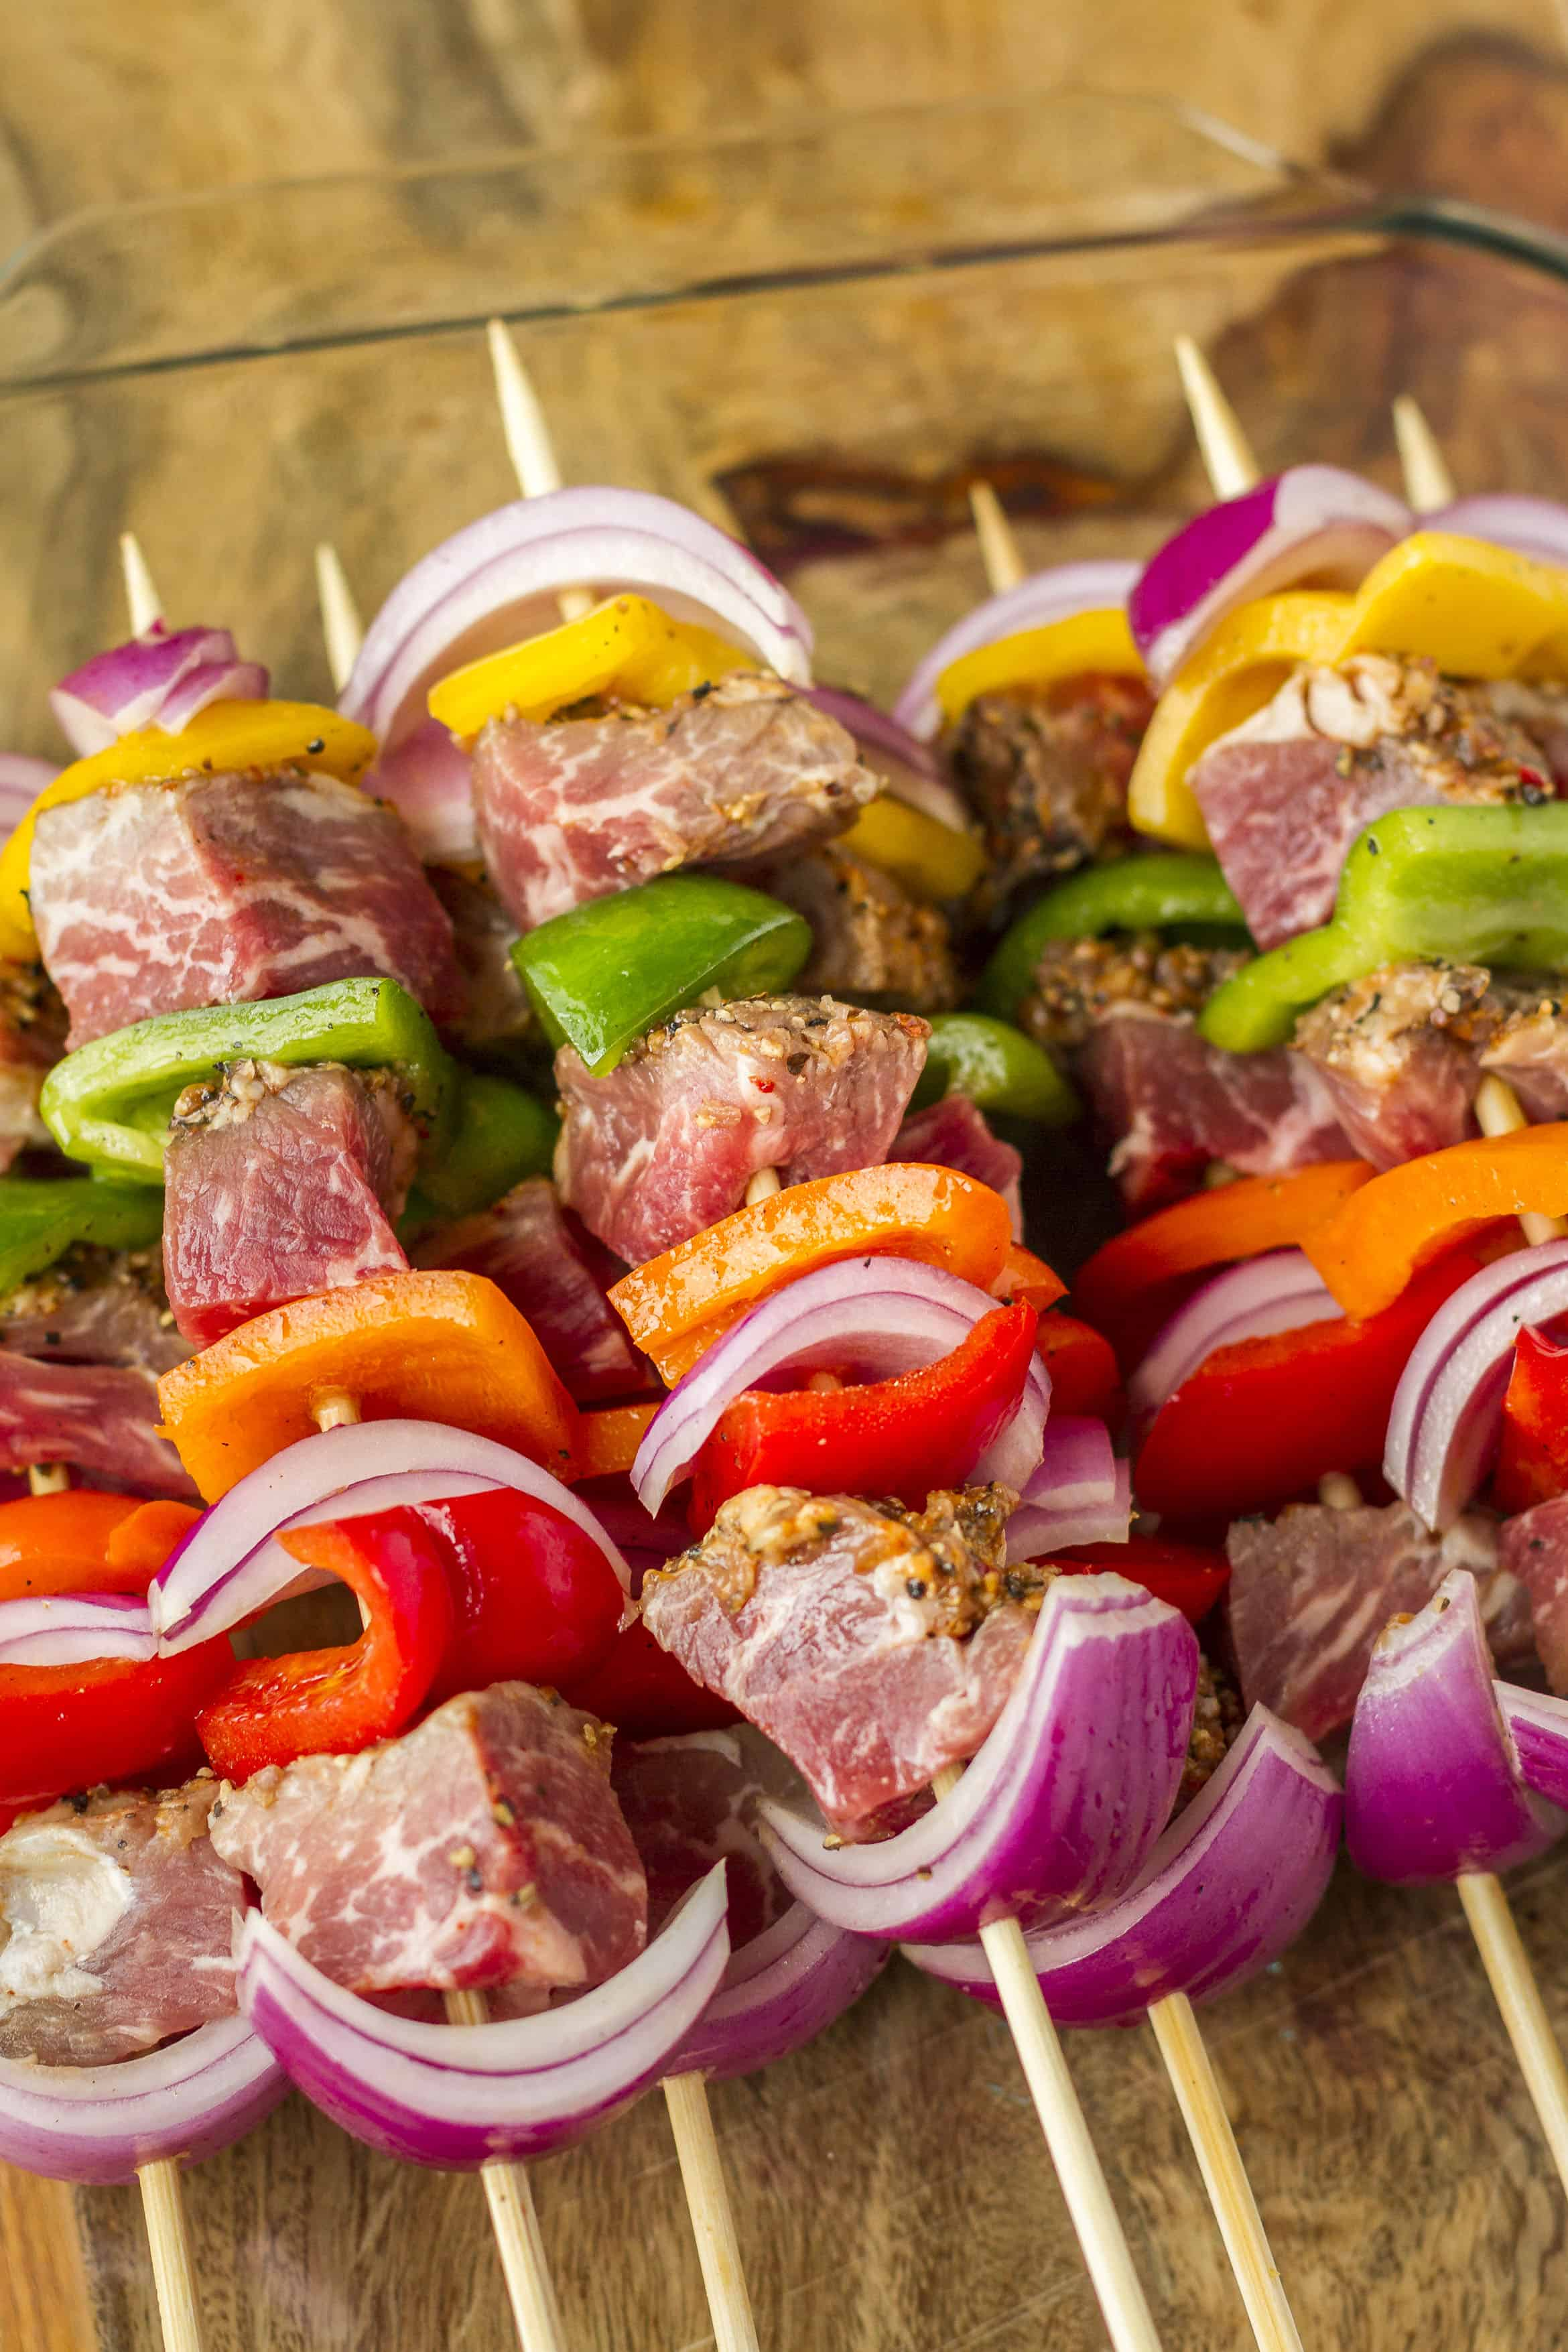 Tri-Tip Beef Kabobs -- Try these delicious tri-tip beef kabobs at your next cookout! Chunks of marinated tri-tip, with colorful red onions and bell peppers, will have your guests lining up for more! | kabobs on the grill | steak kabobs | kabobs recipe | kebabs recipe | get the recipe on unsophisticook.com